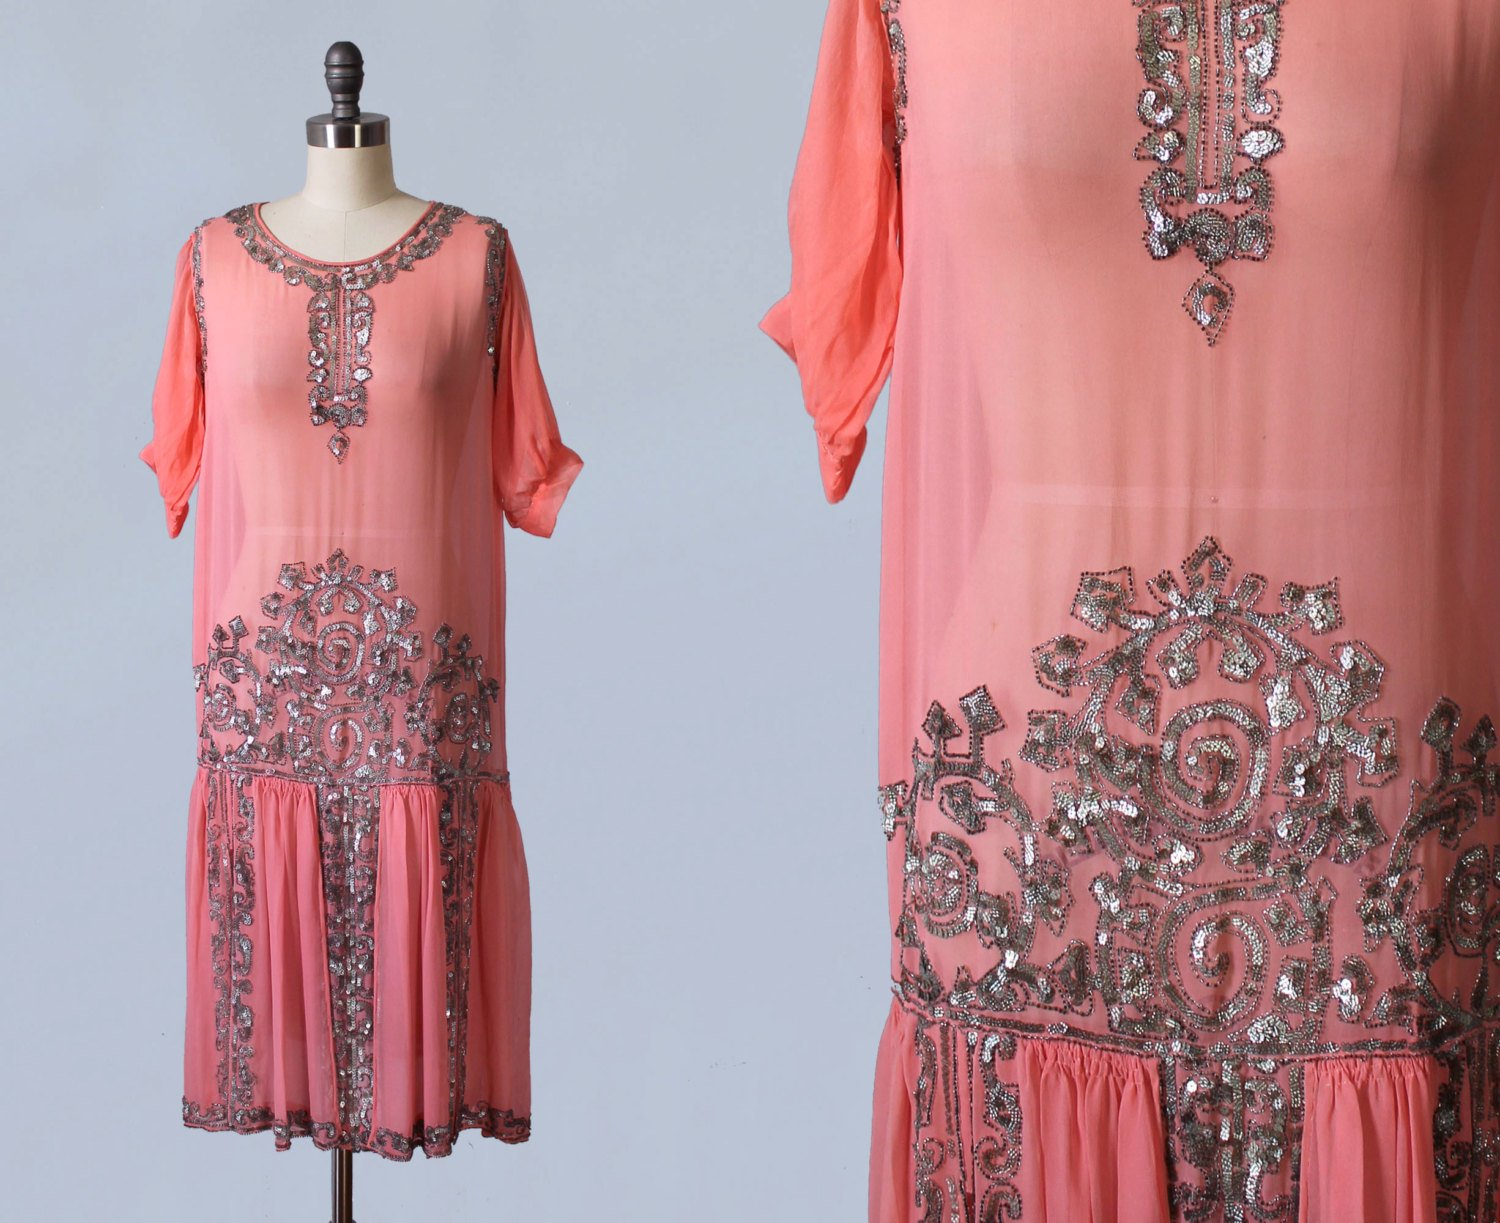 Pink silk dress with silver sequins, 1920s